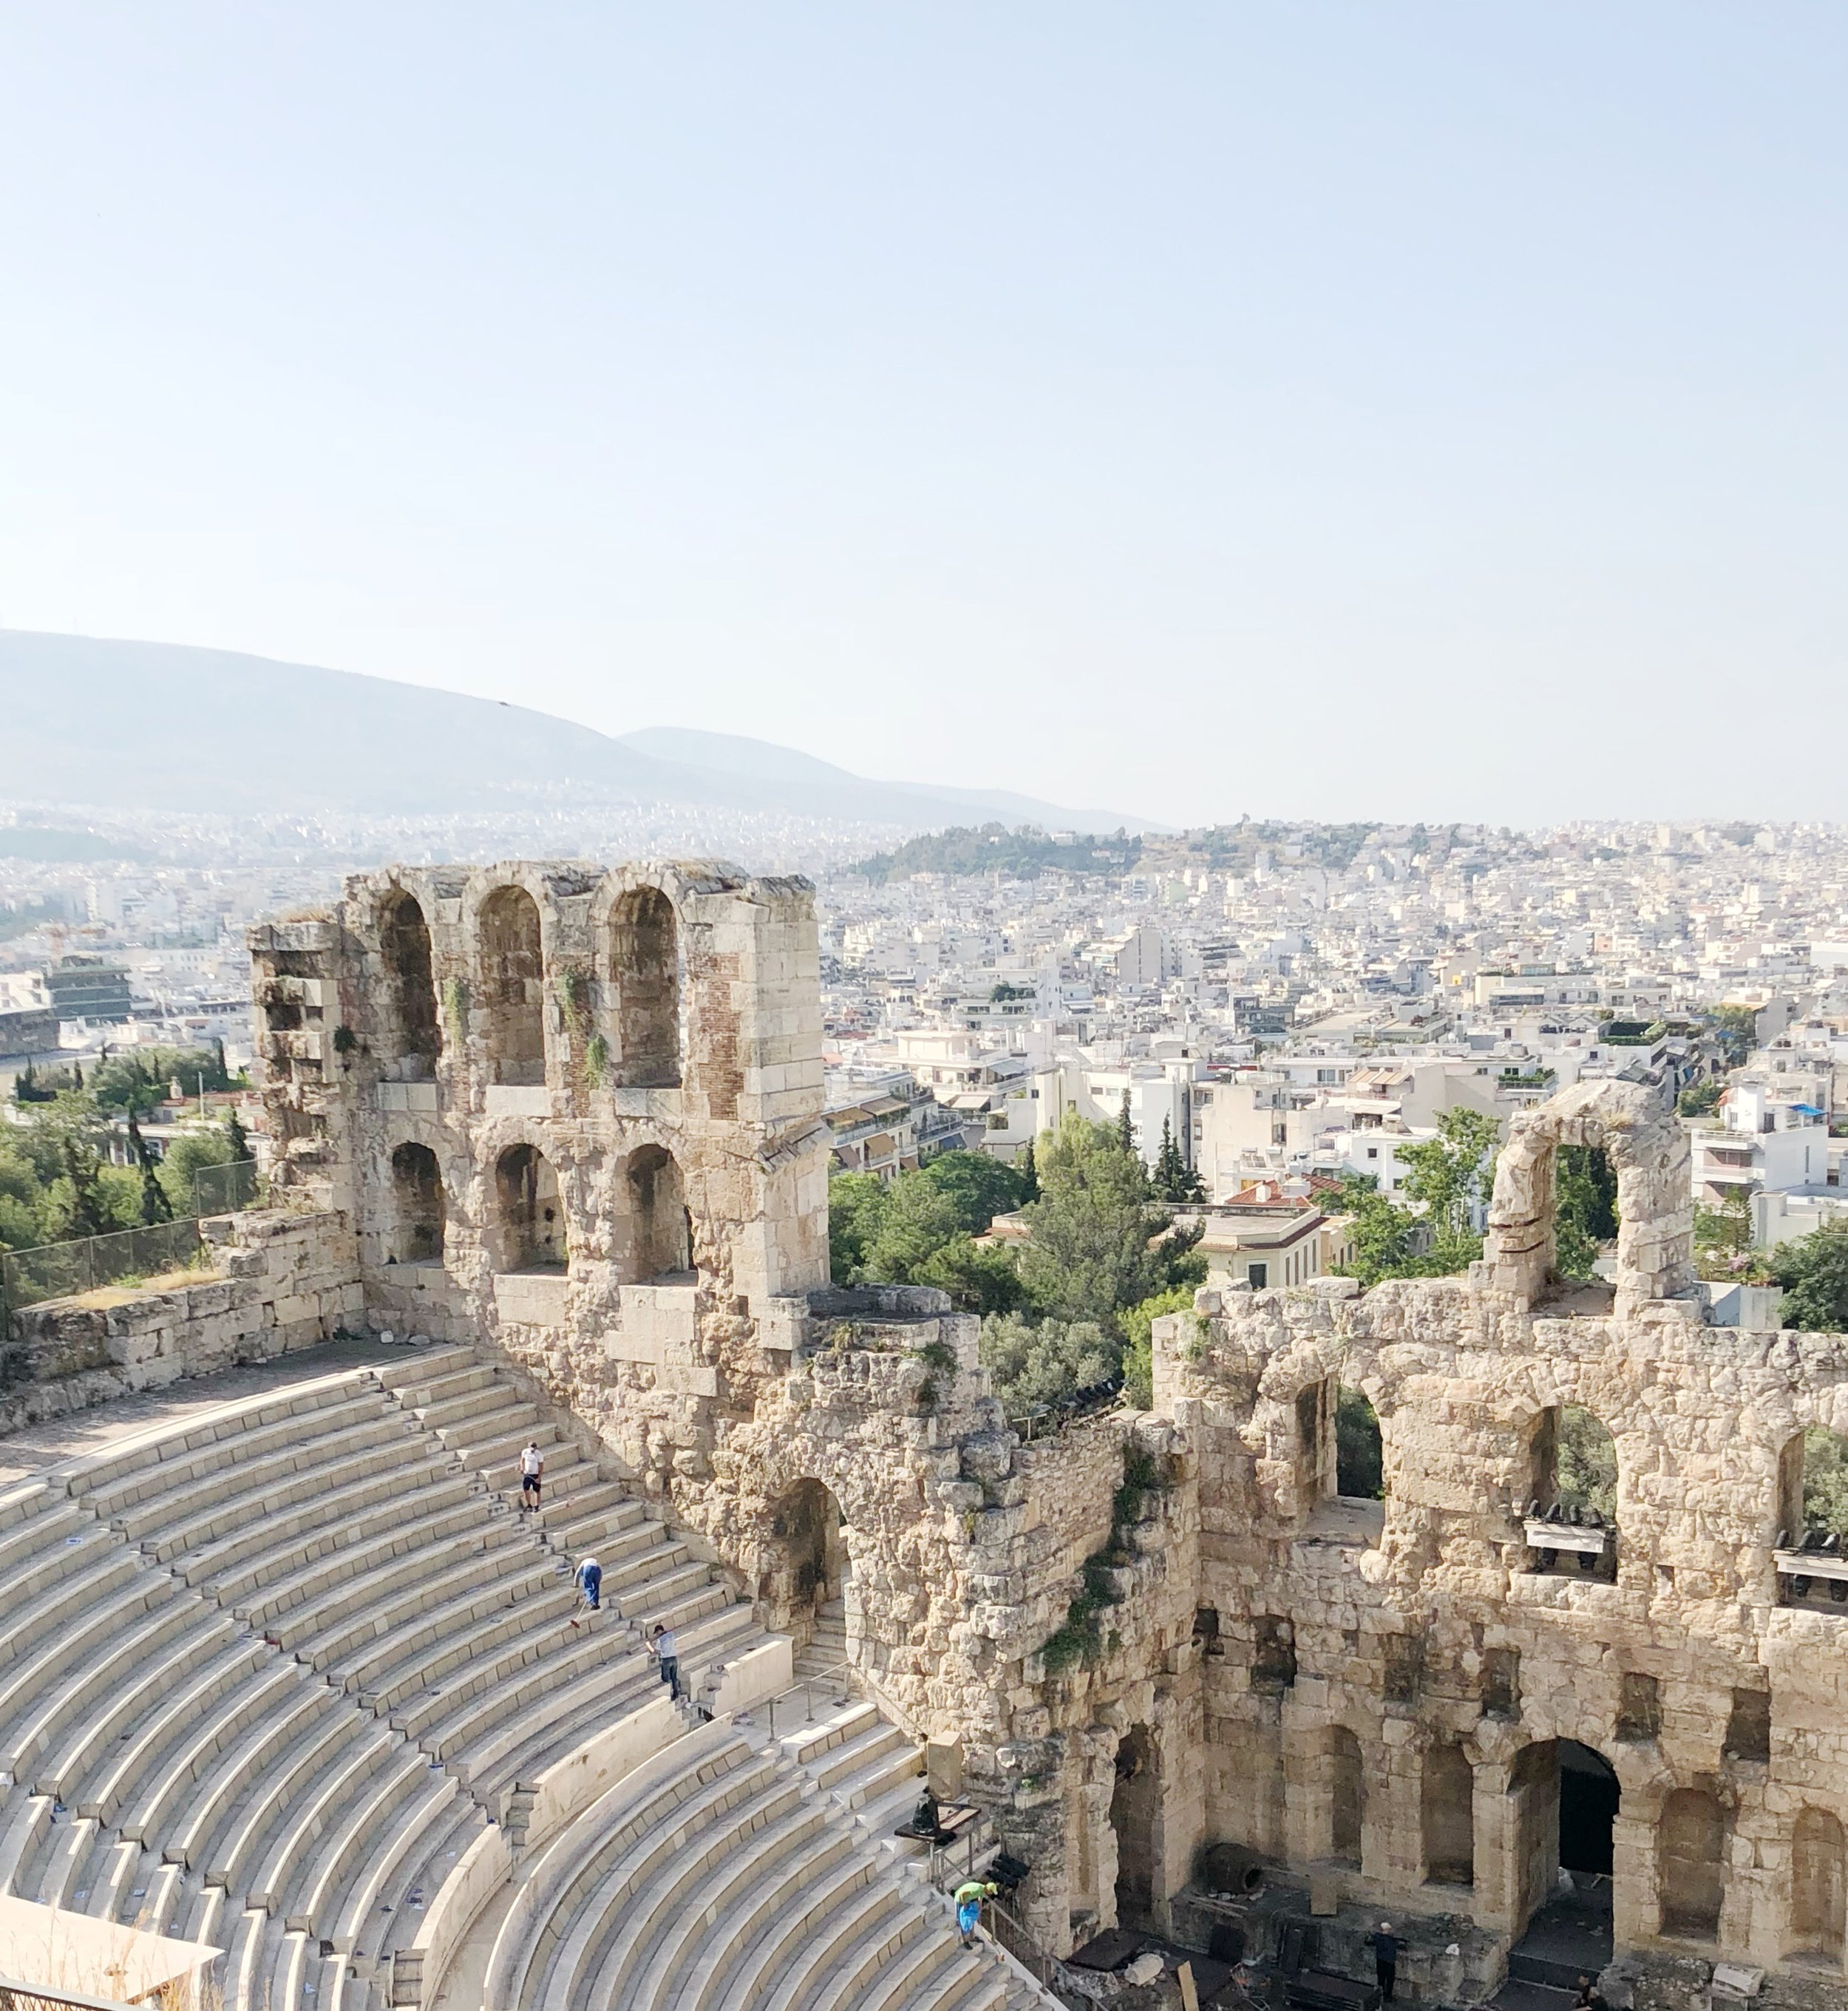 View from the top of the Herodes Theater. And a great view of Athens city.